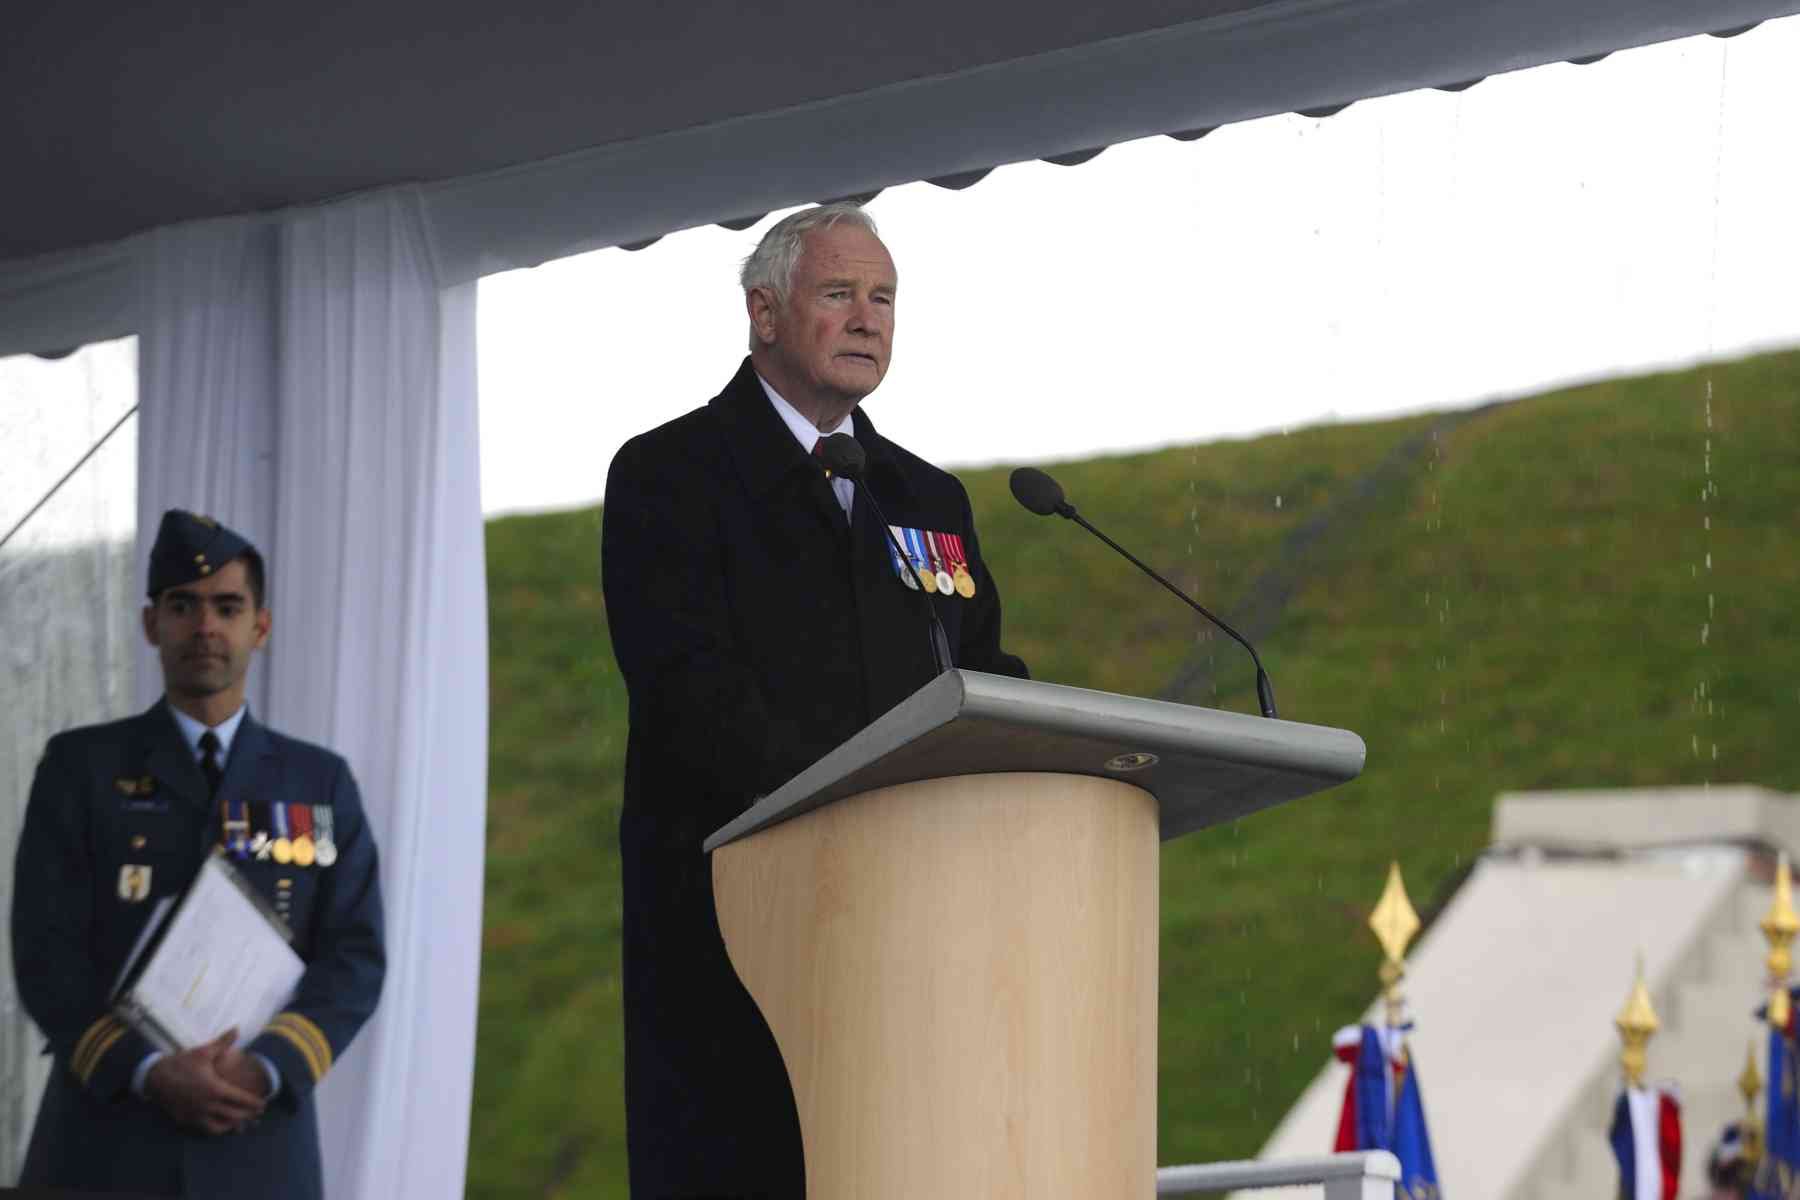 "His Excellency delivered a speech at the remembrance ceremony at Vimy: ""What should all Canadians recognize and remember 95 years later—95 years after the single bloodiest day in Canadian military history? We recognize and should always remember that out of the staggering death and destruction of that battle, out of the stunning carnage of that day, out of the cruellest conflict in our national life, we Canadians have been able to grasp and carry forward something that is true and honourable and lasting: that we are a smart and caring nation, that to prosper we must become ever smarter, ever more caring, and that when we work together in a spirit of ingenuity and compassion, the best that Canadians have to give the world is the best that anyone can give."""